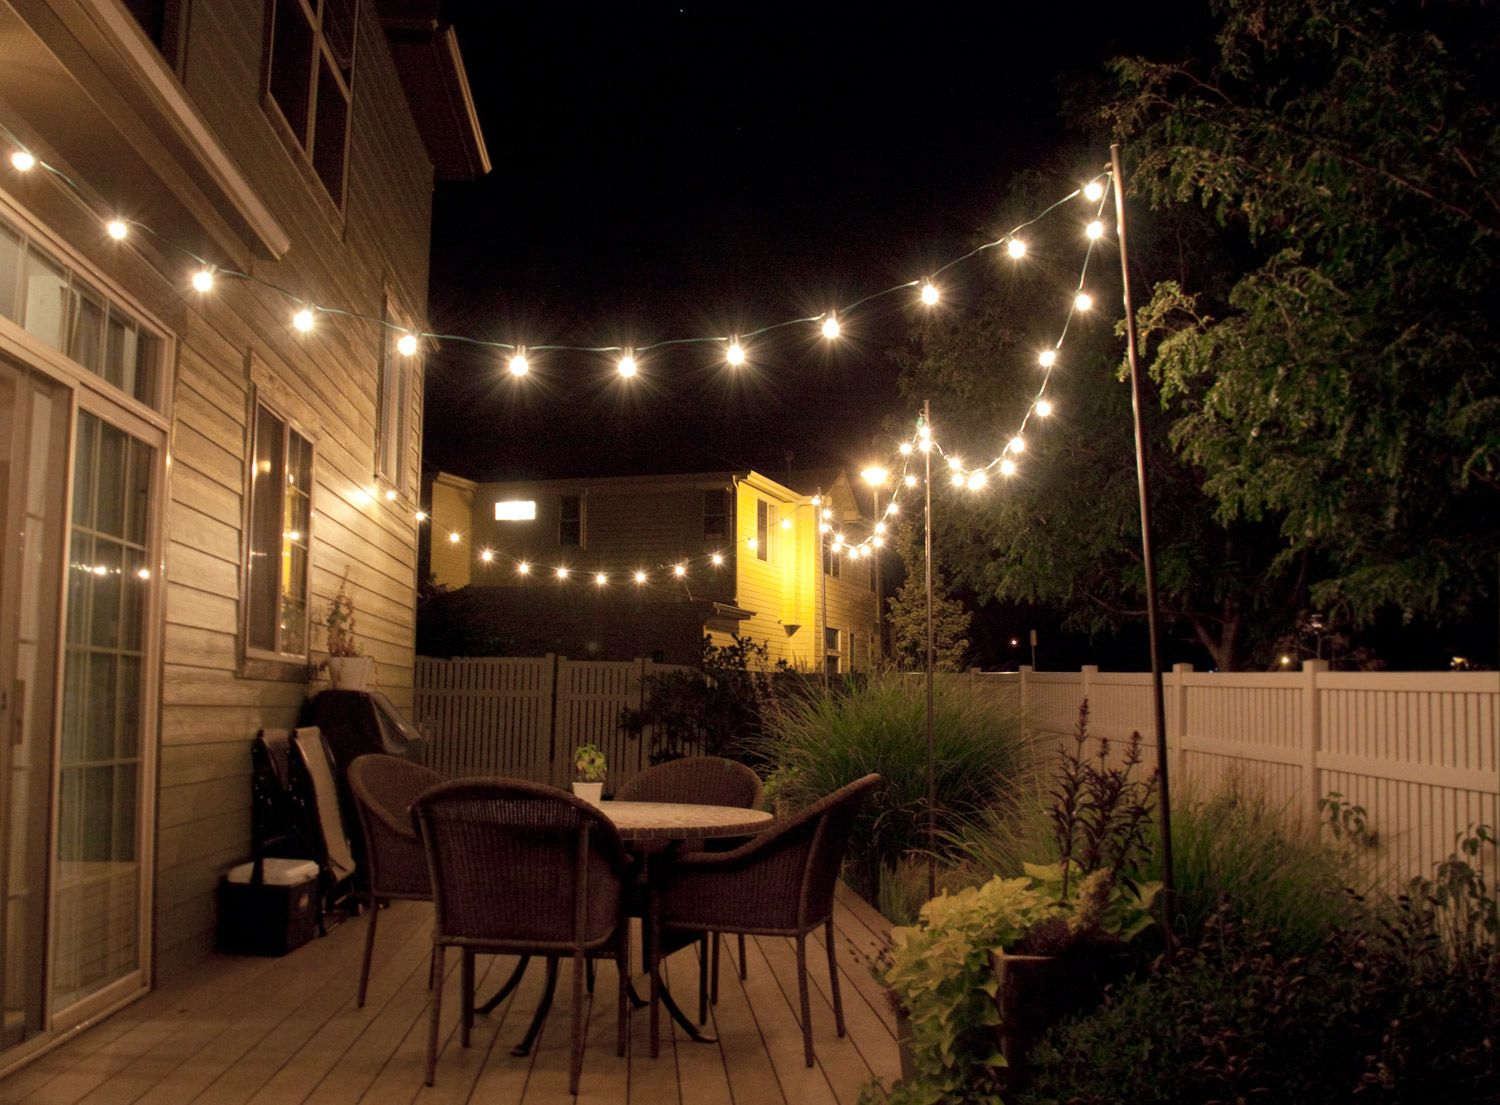 How To Hang String Lights In Backyard Without Trees Interesting How To Make Inexpensive Poles To Hang String Lights On  Café Style Review